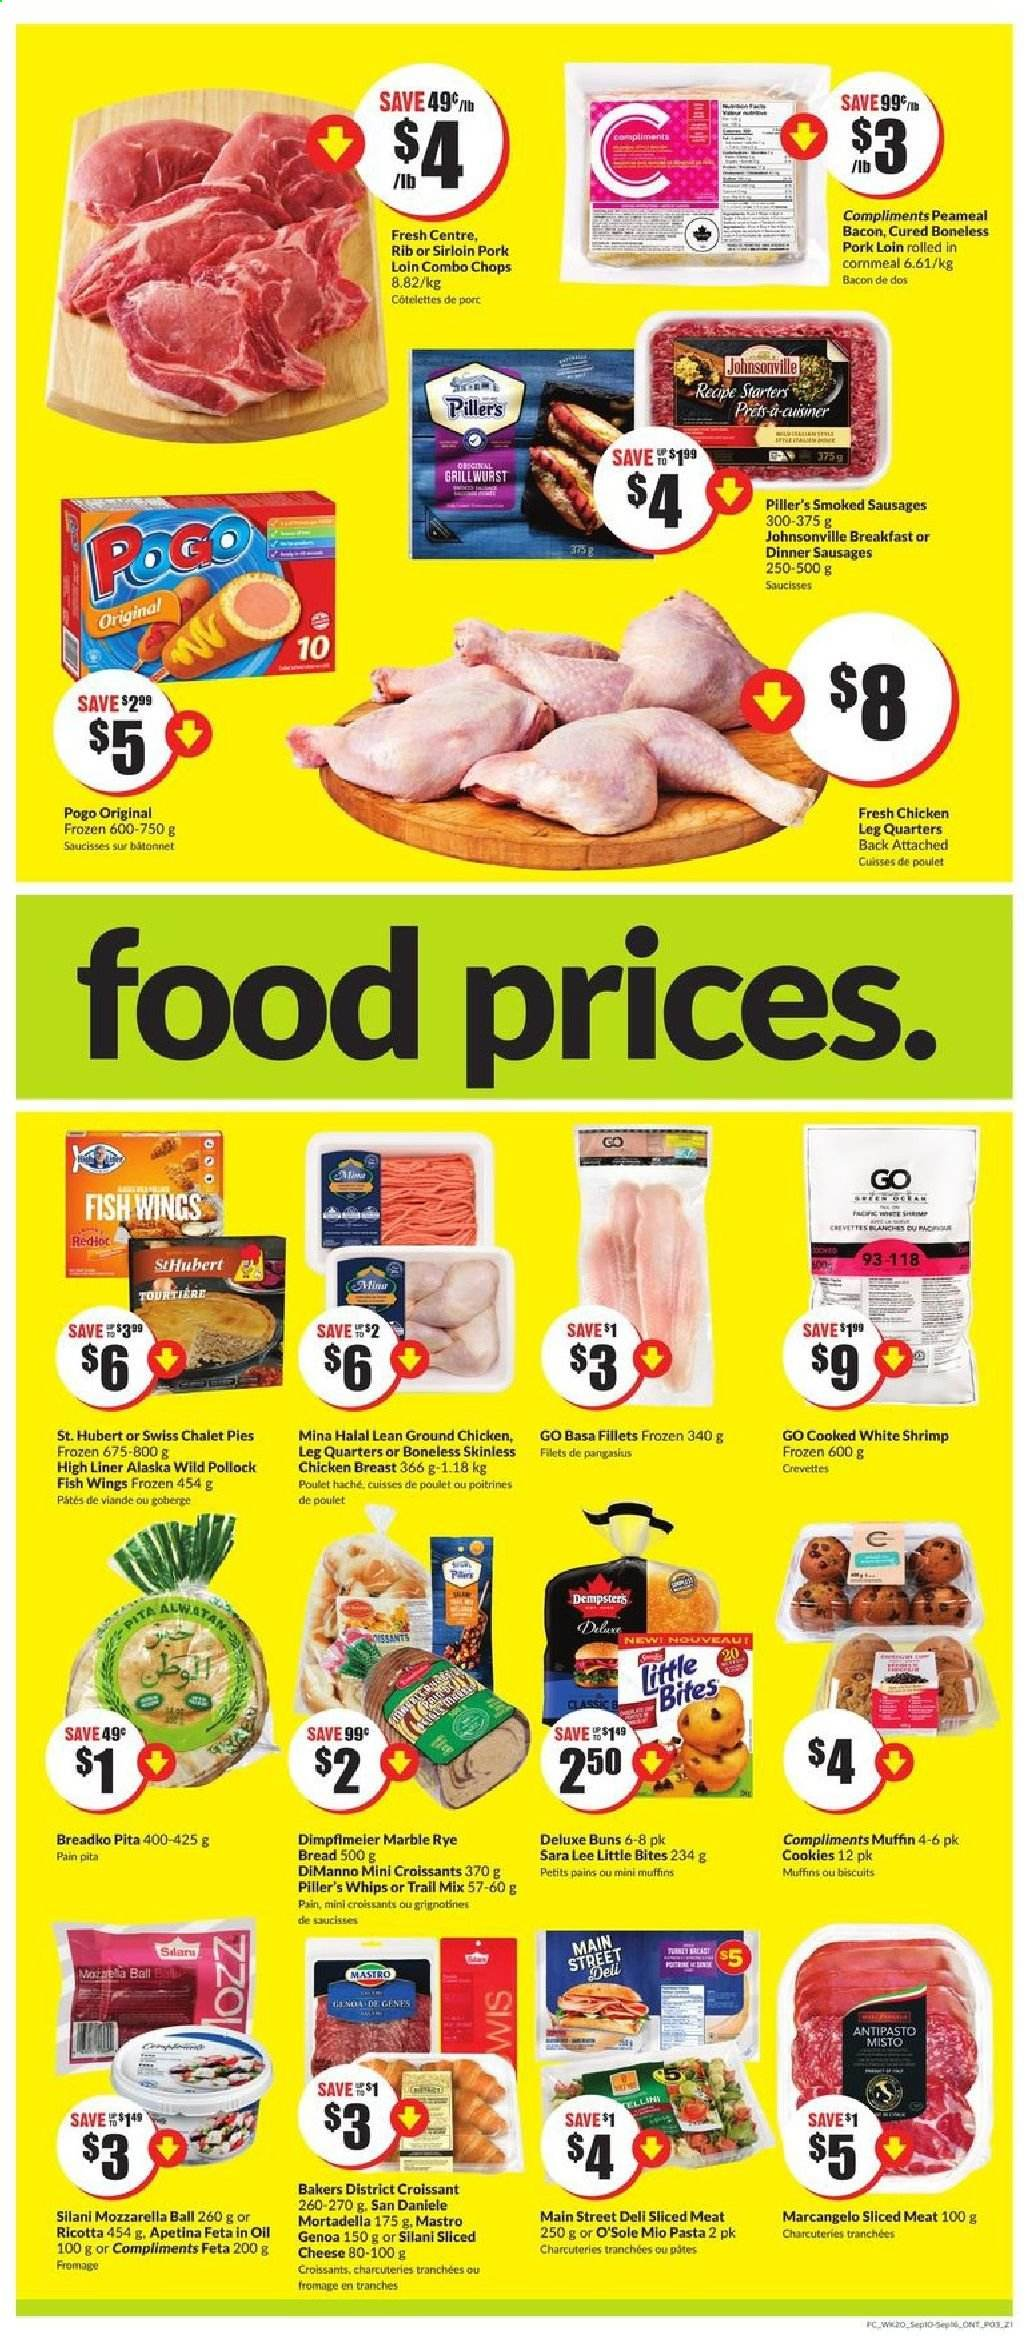 FreshCo. Flyer - September 10, 2020 - September 16, 2020 - Sales products - bacon, biscuits, bread, cookies, croissants, dell, fêta, frozen, ground chicken, mortadella, mozzarella, muffins, ricotta, sausages, shrimp, sliced cheese, sole, pita, pollock, pork loin, pork meat, chicken, chicken breast, pangasius, cheese, pasta, lee, poulet, viande, porc, croissant, biscuit, crevette, fromage, marble, saucisse, pâtes, ball, bites, wings, meat, fish, oil, shrimps. Page 3.